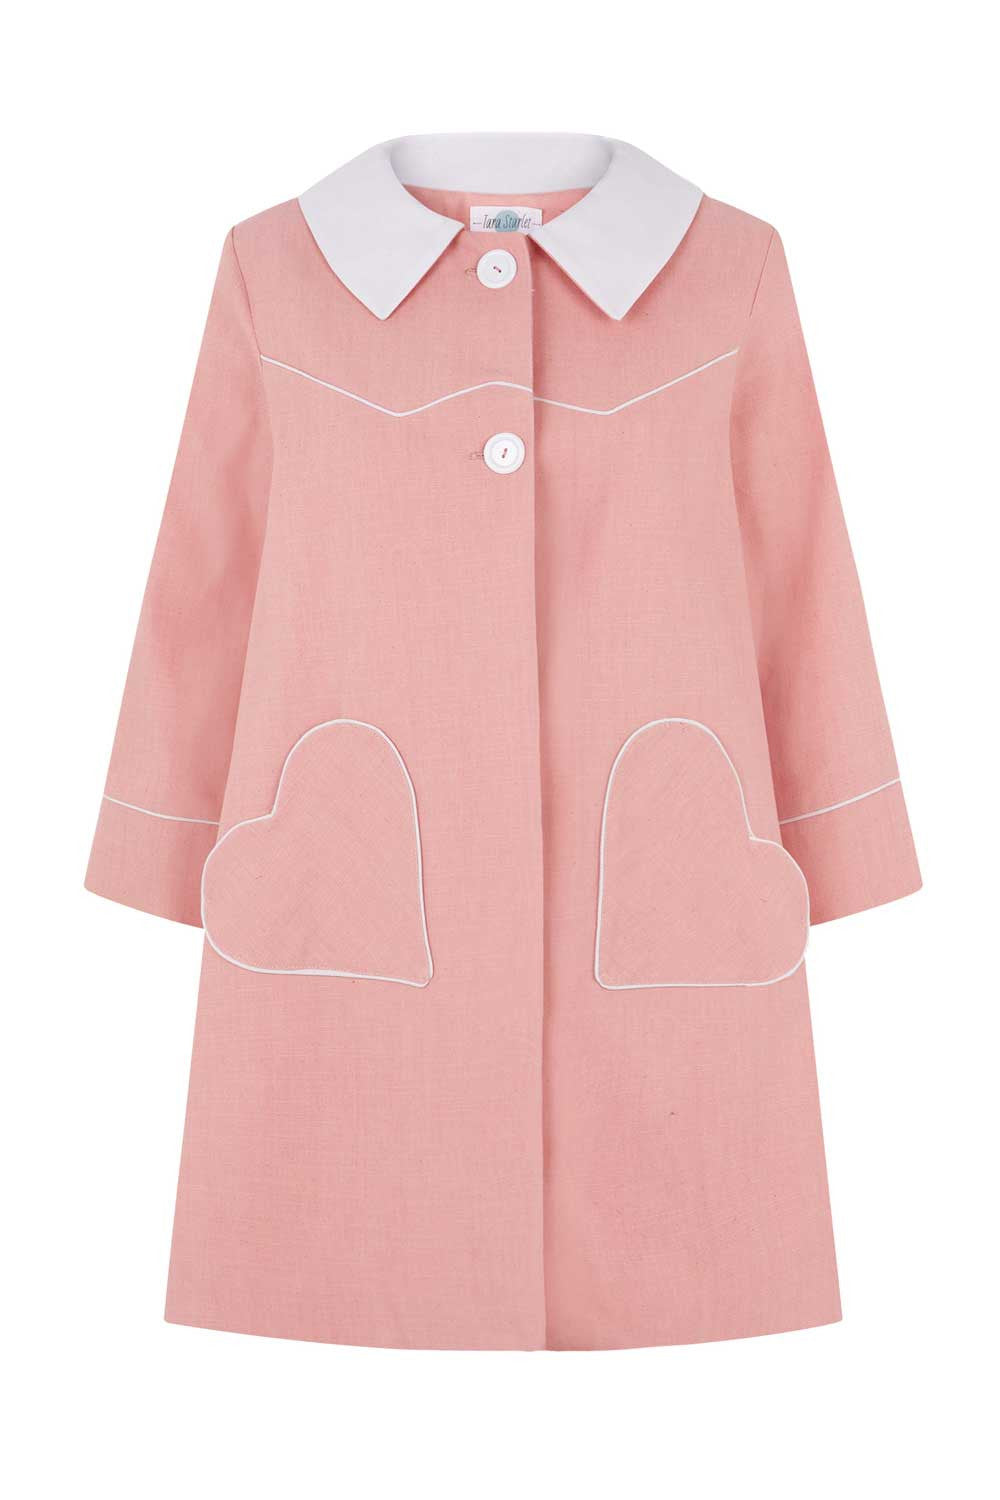 The Loveheart Coat - Pink